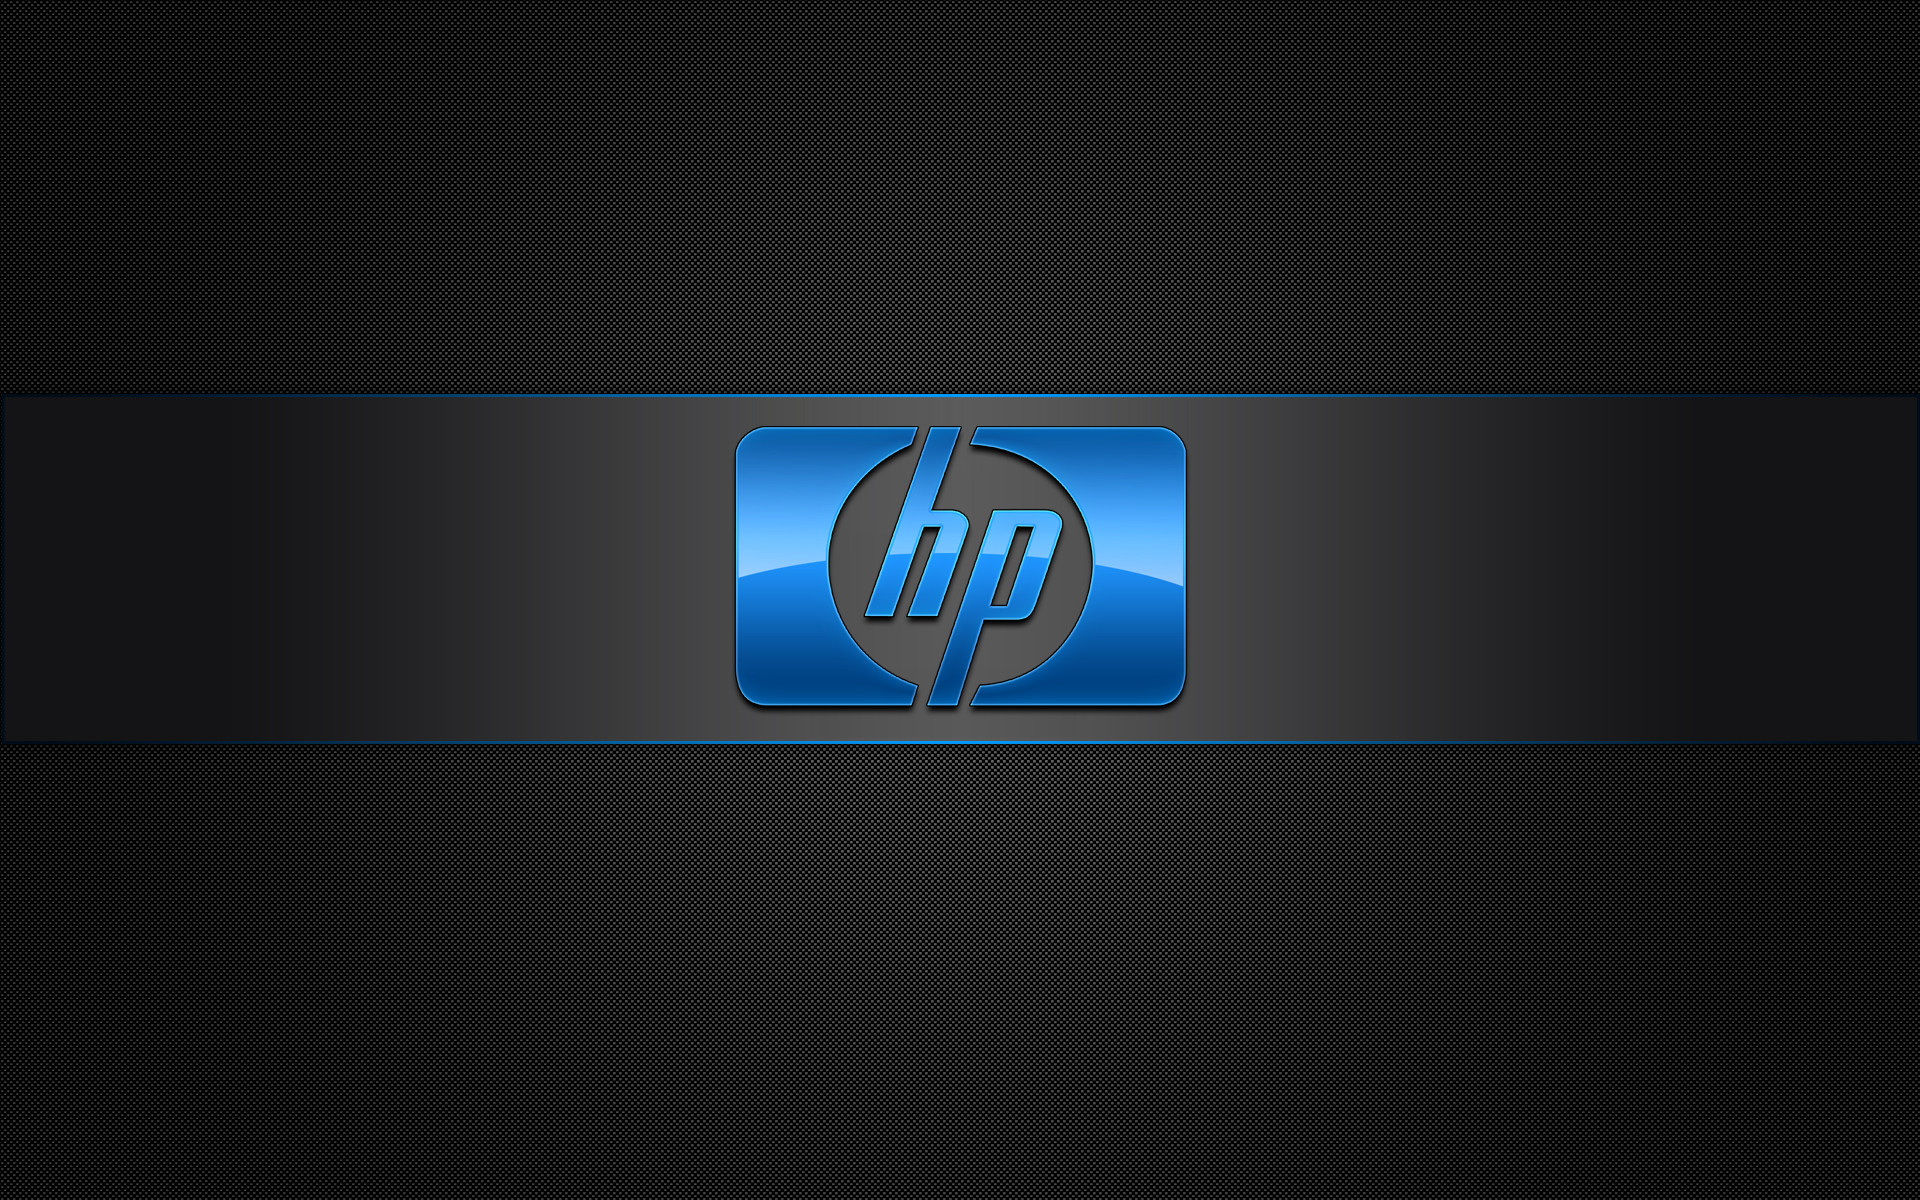 hp wallpapers for windows 10 (64+ images)